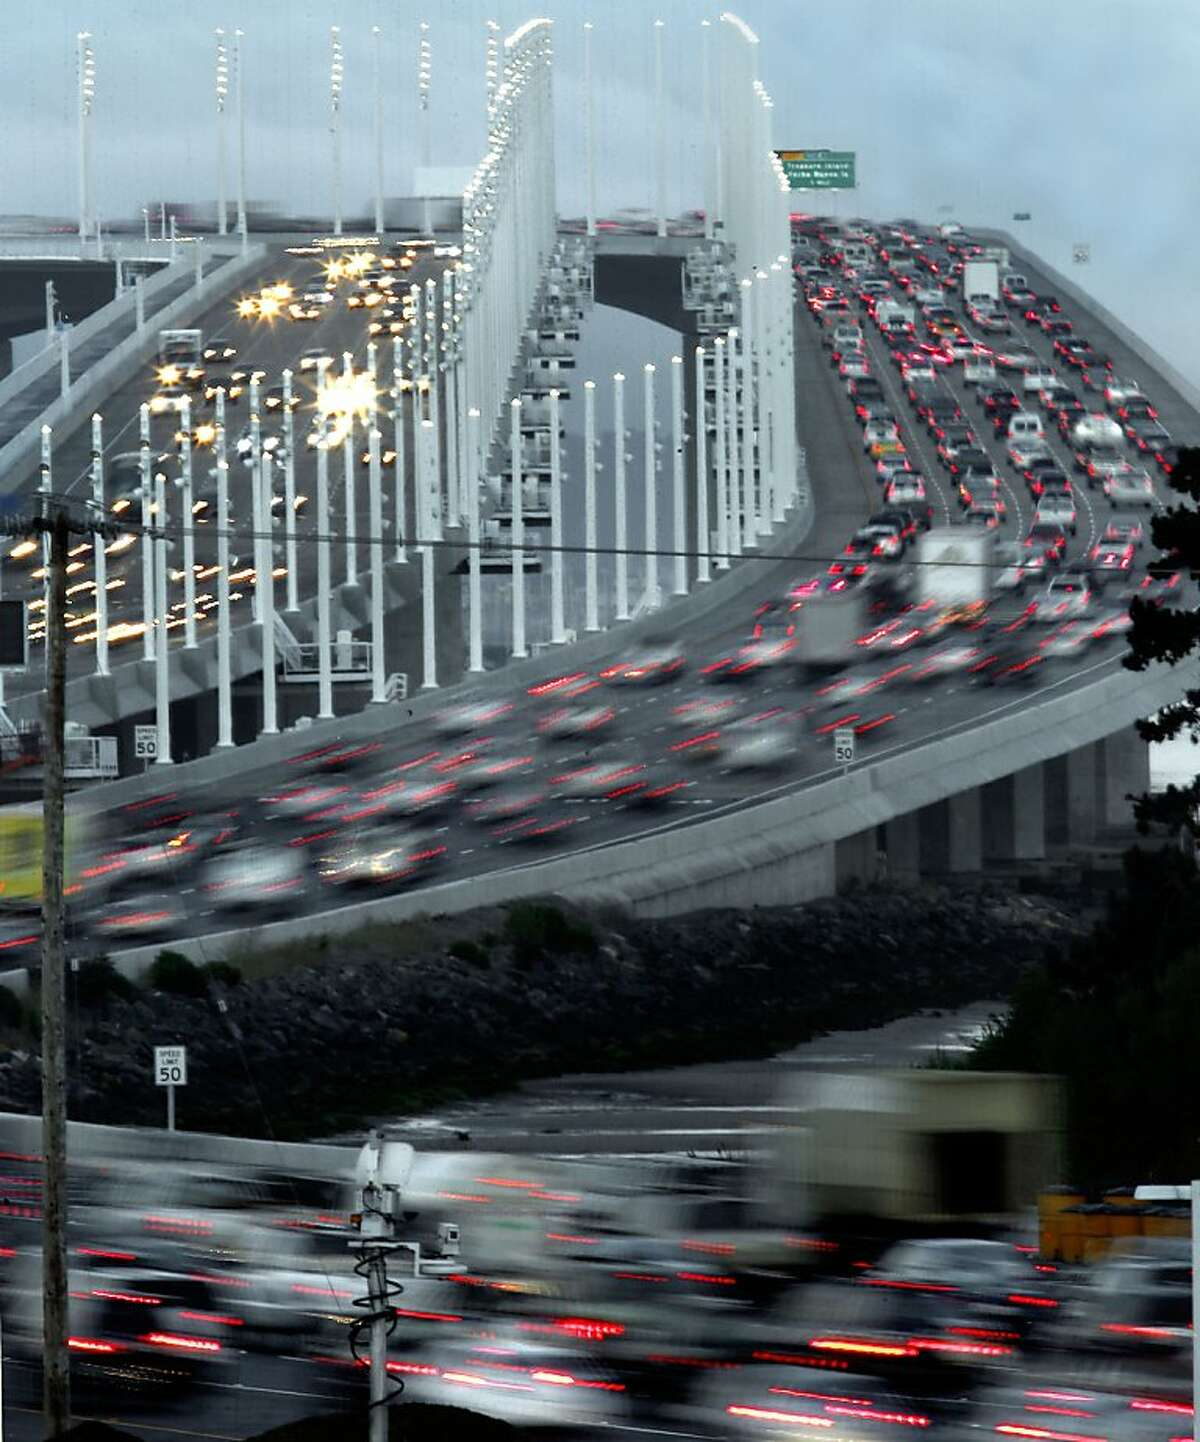 The morning commute in full swing as motorists make their way east and west bound across the roadway, in Oakland, Calif. on Tuesday Sept. 3, 2013, after the new eastern span of the Bay Bridge opened late last evening to traffic.